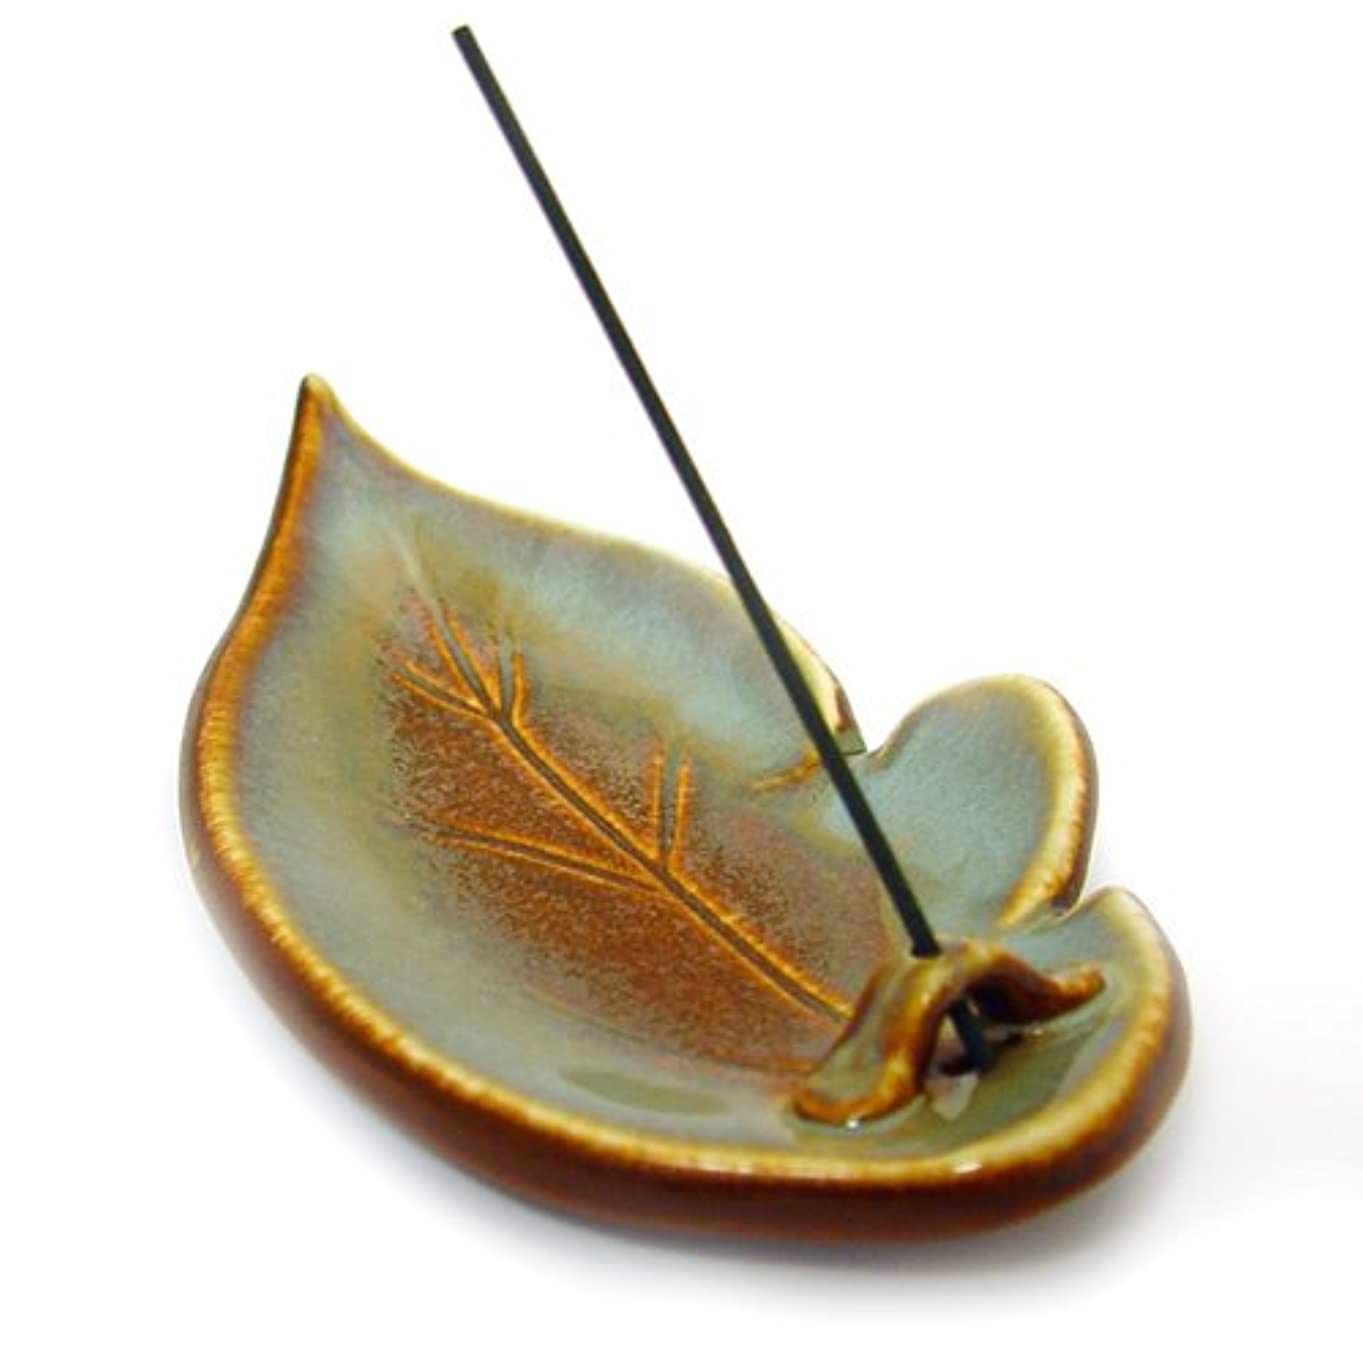 梨サイズ地下Shoyeido's Desert Sage Ceramic Leaf Incense Holder by SHOYEIDO [並行輸入品]